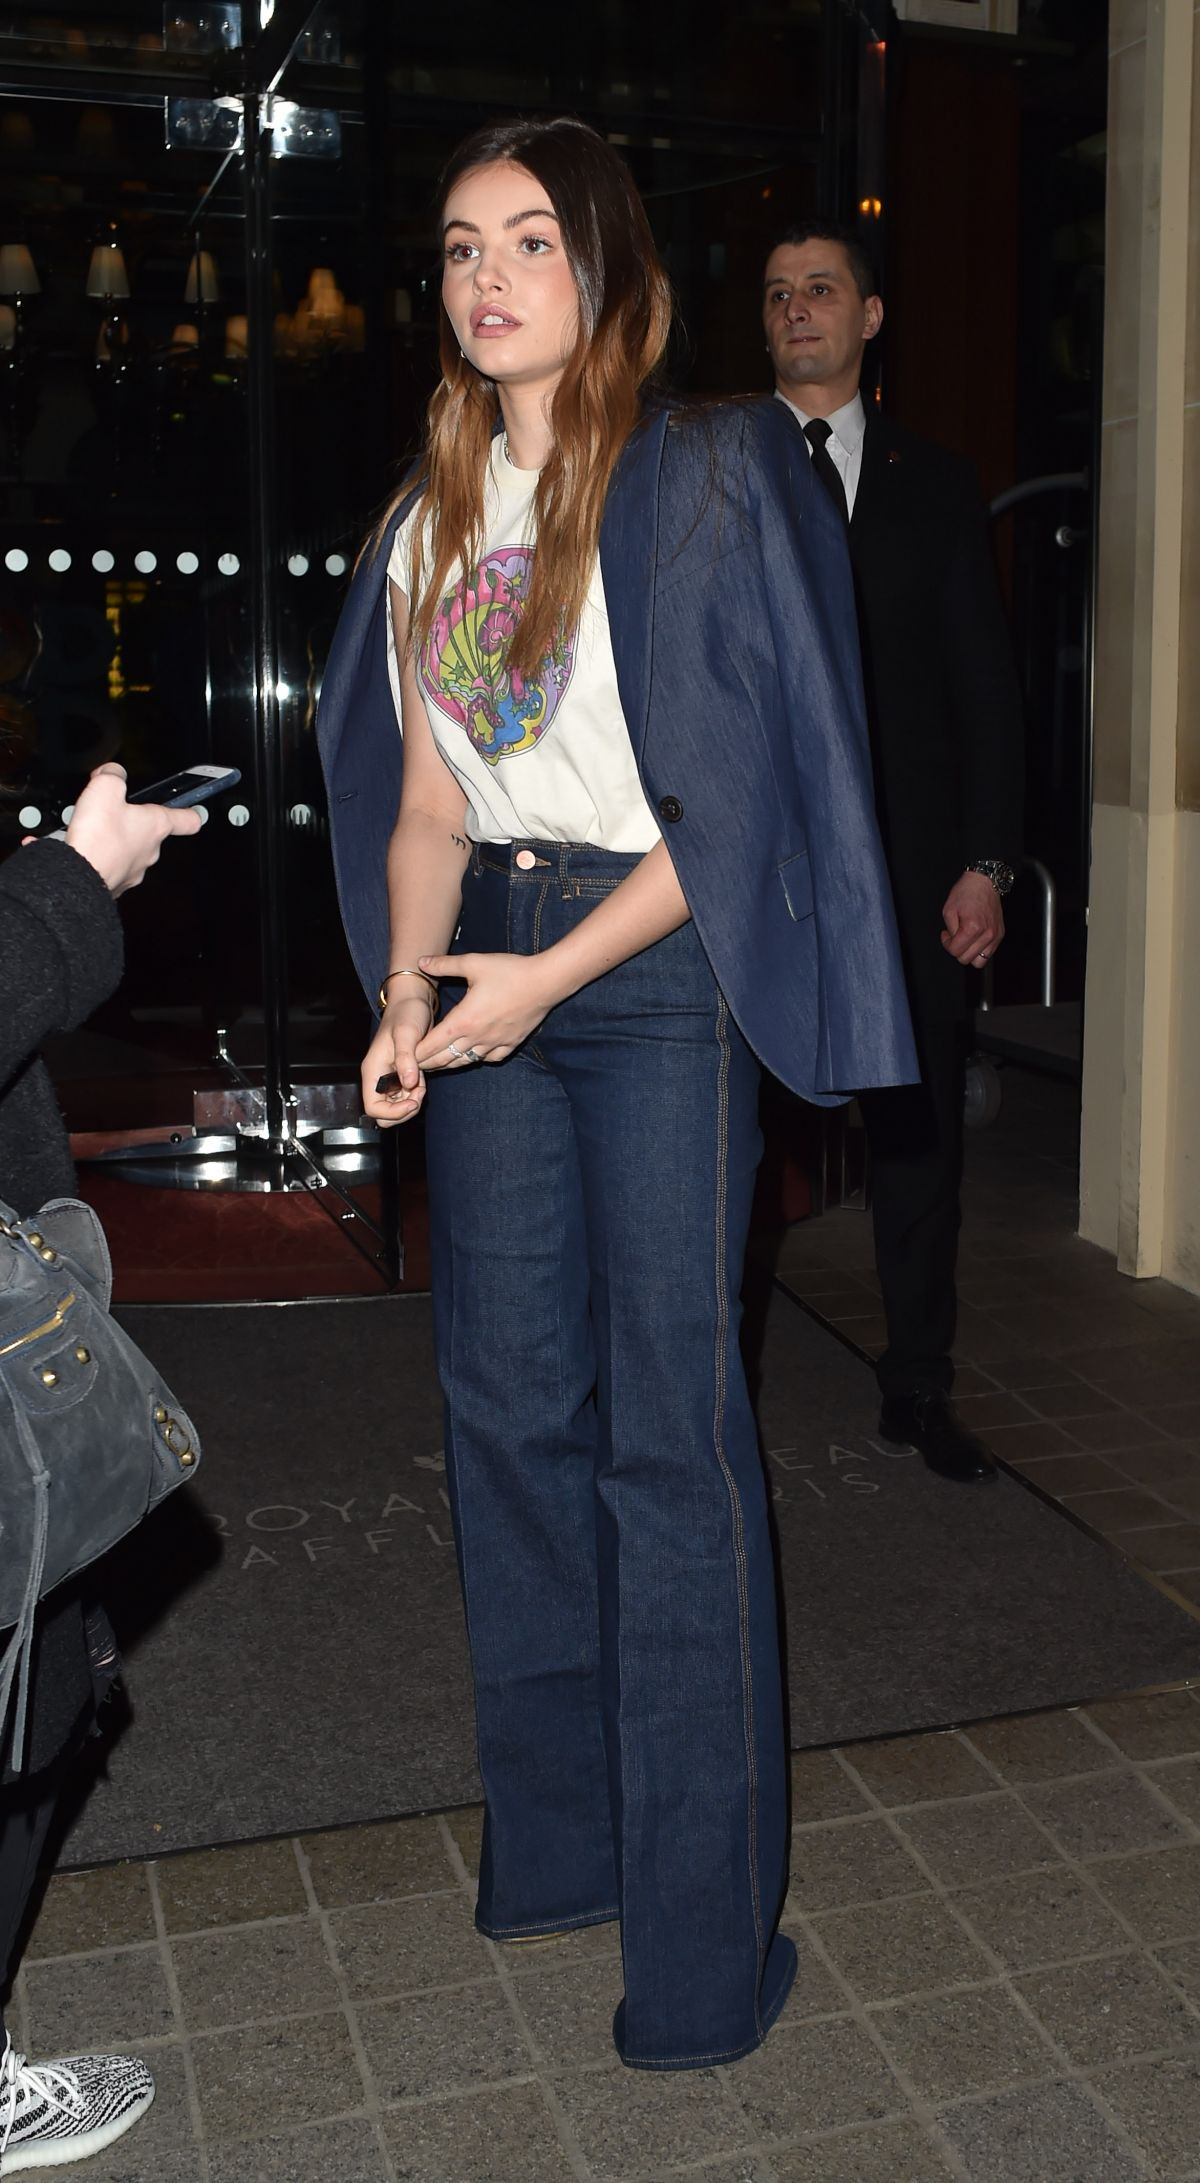 9f064762 THYLANE BLONDEAU Arrives at Tommy Hilfiger Tommynow Spring 2019: Starring  Tommy x Xendaya Premieres in Paris 03/02/2019